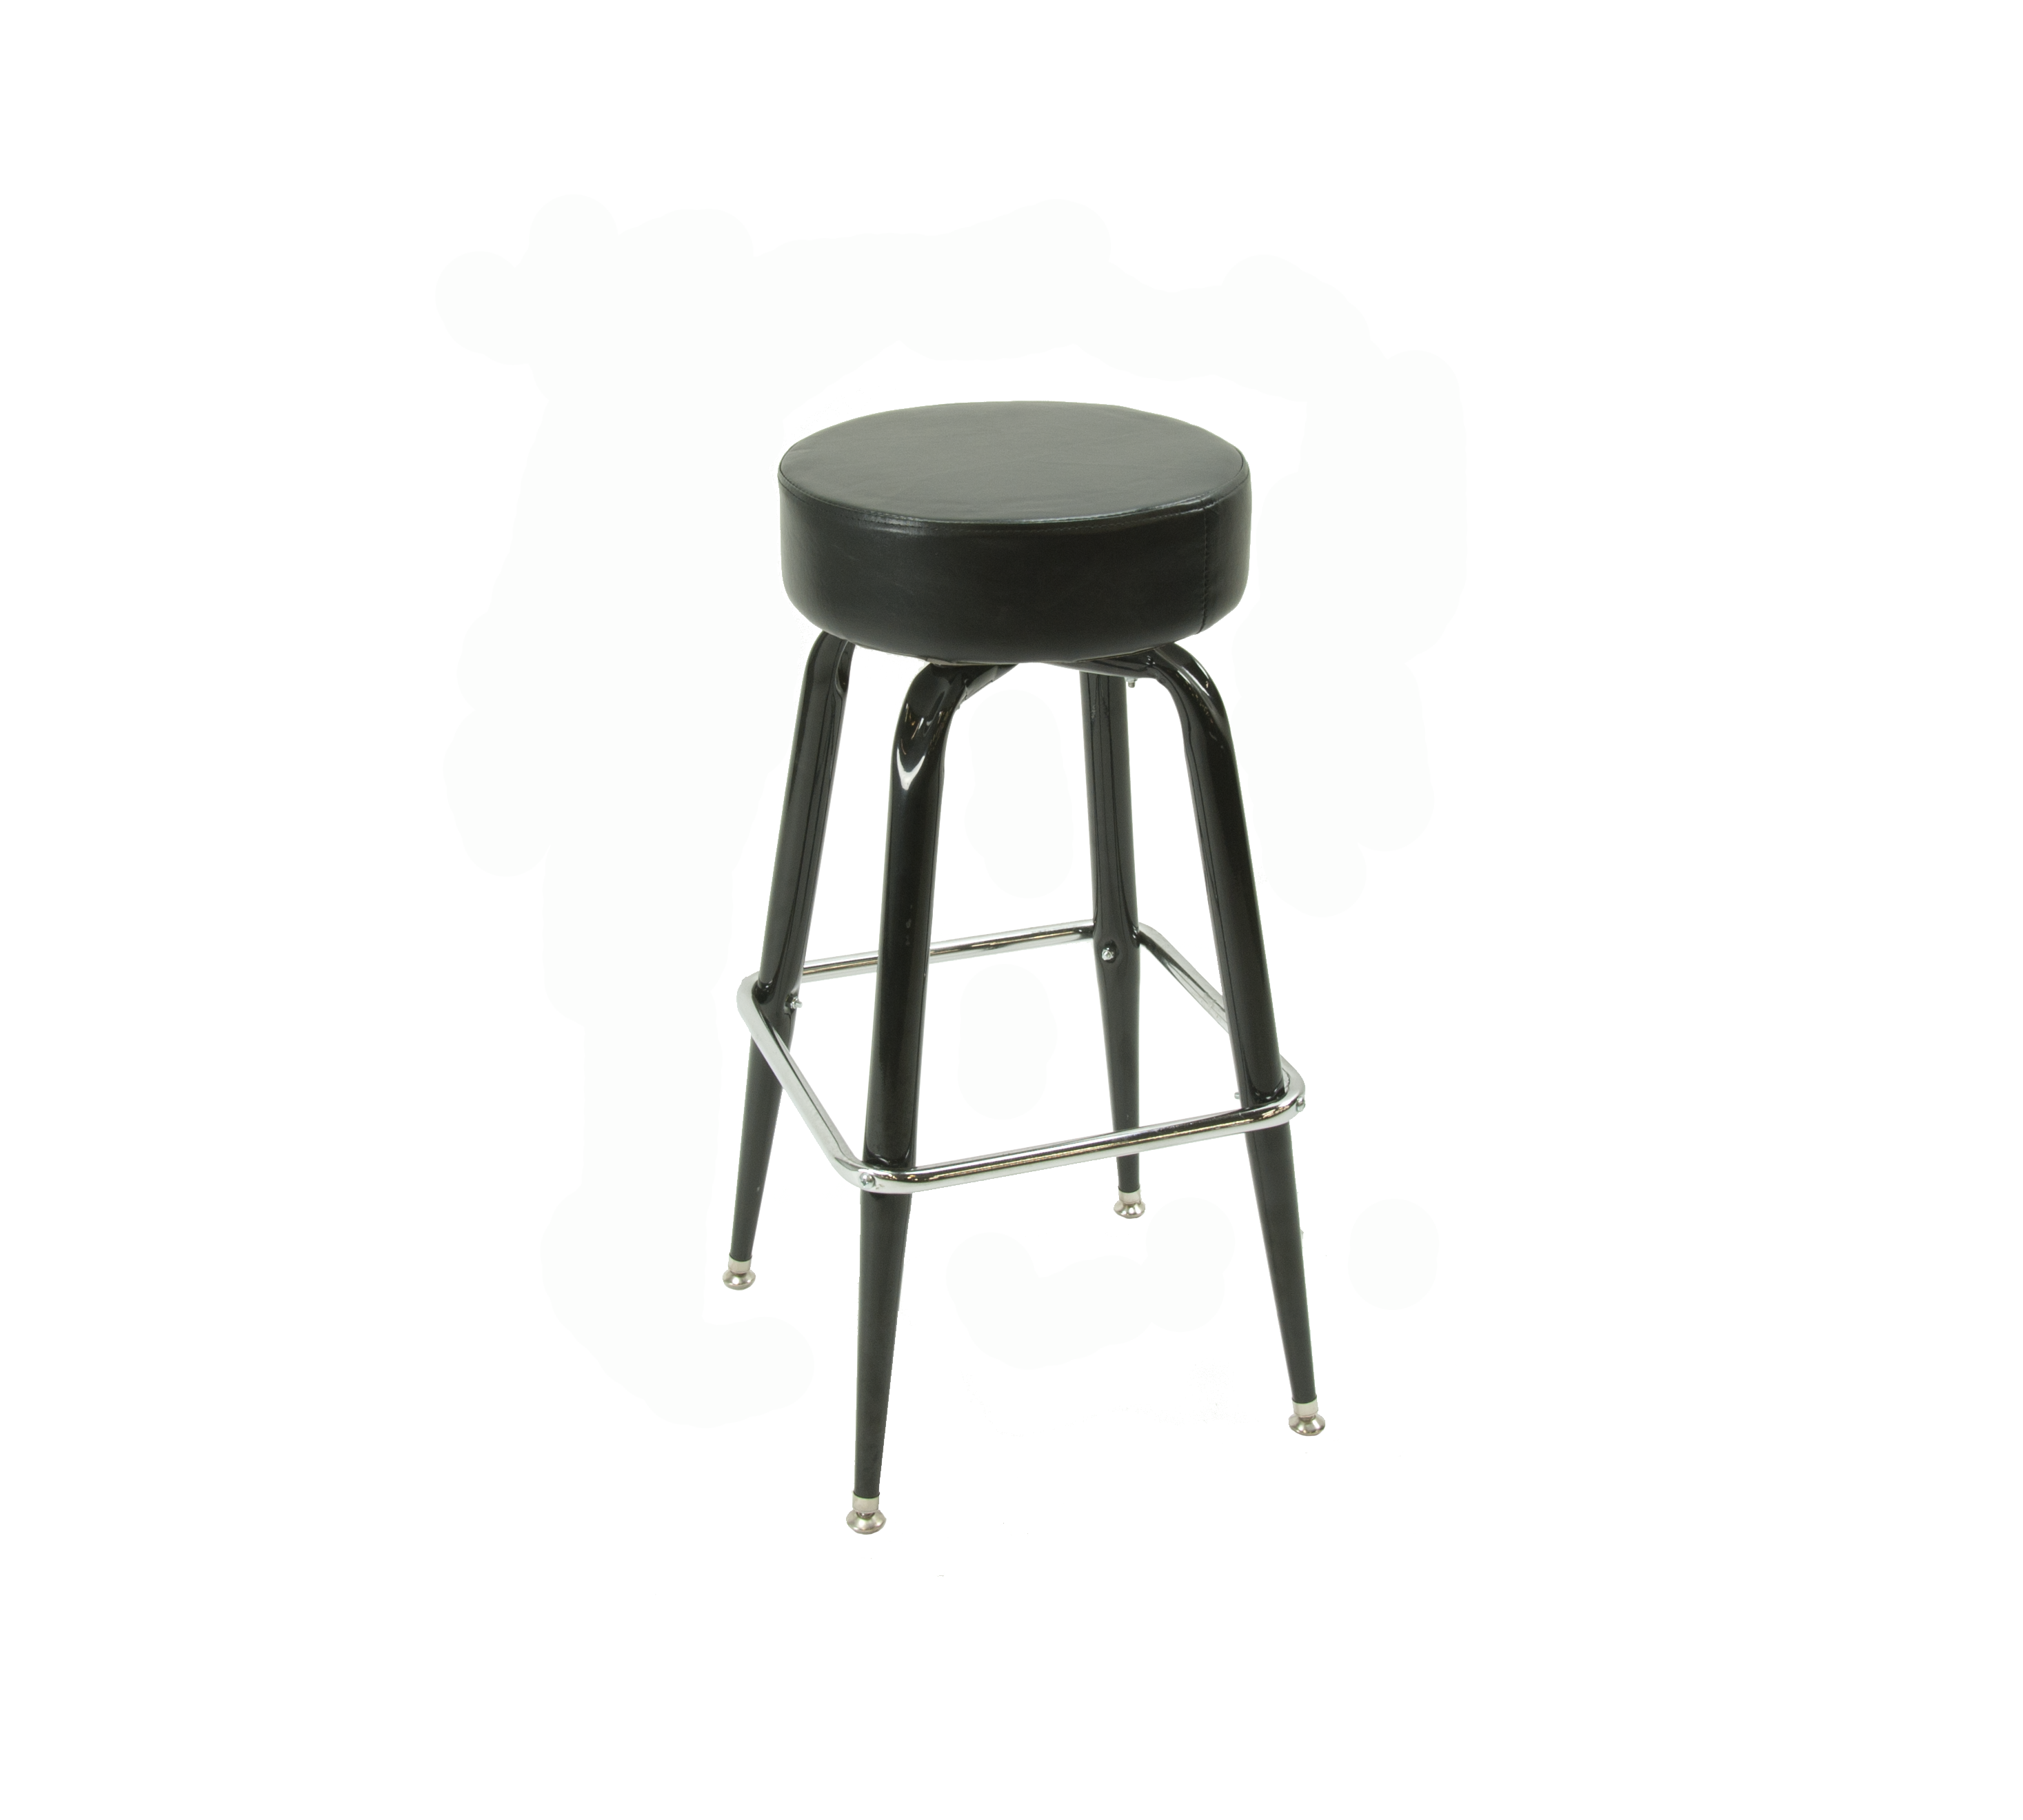 Chrome Double Ring Bar Stools Chrome Bar Stools With